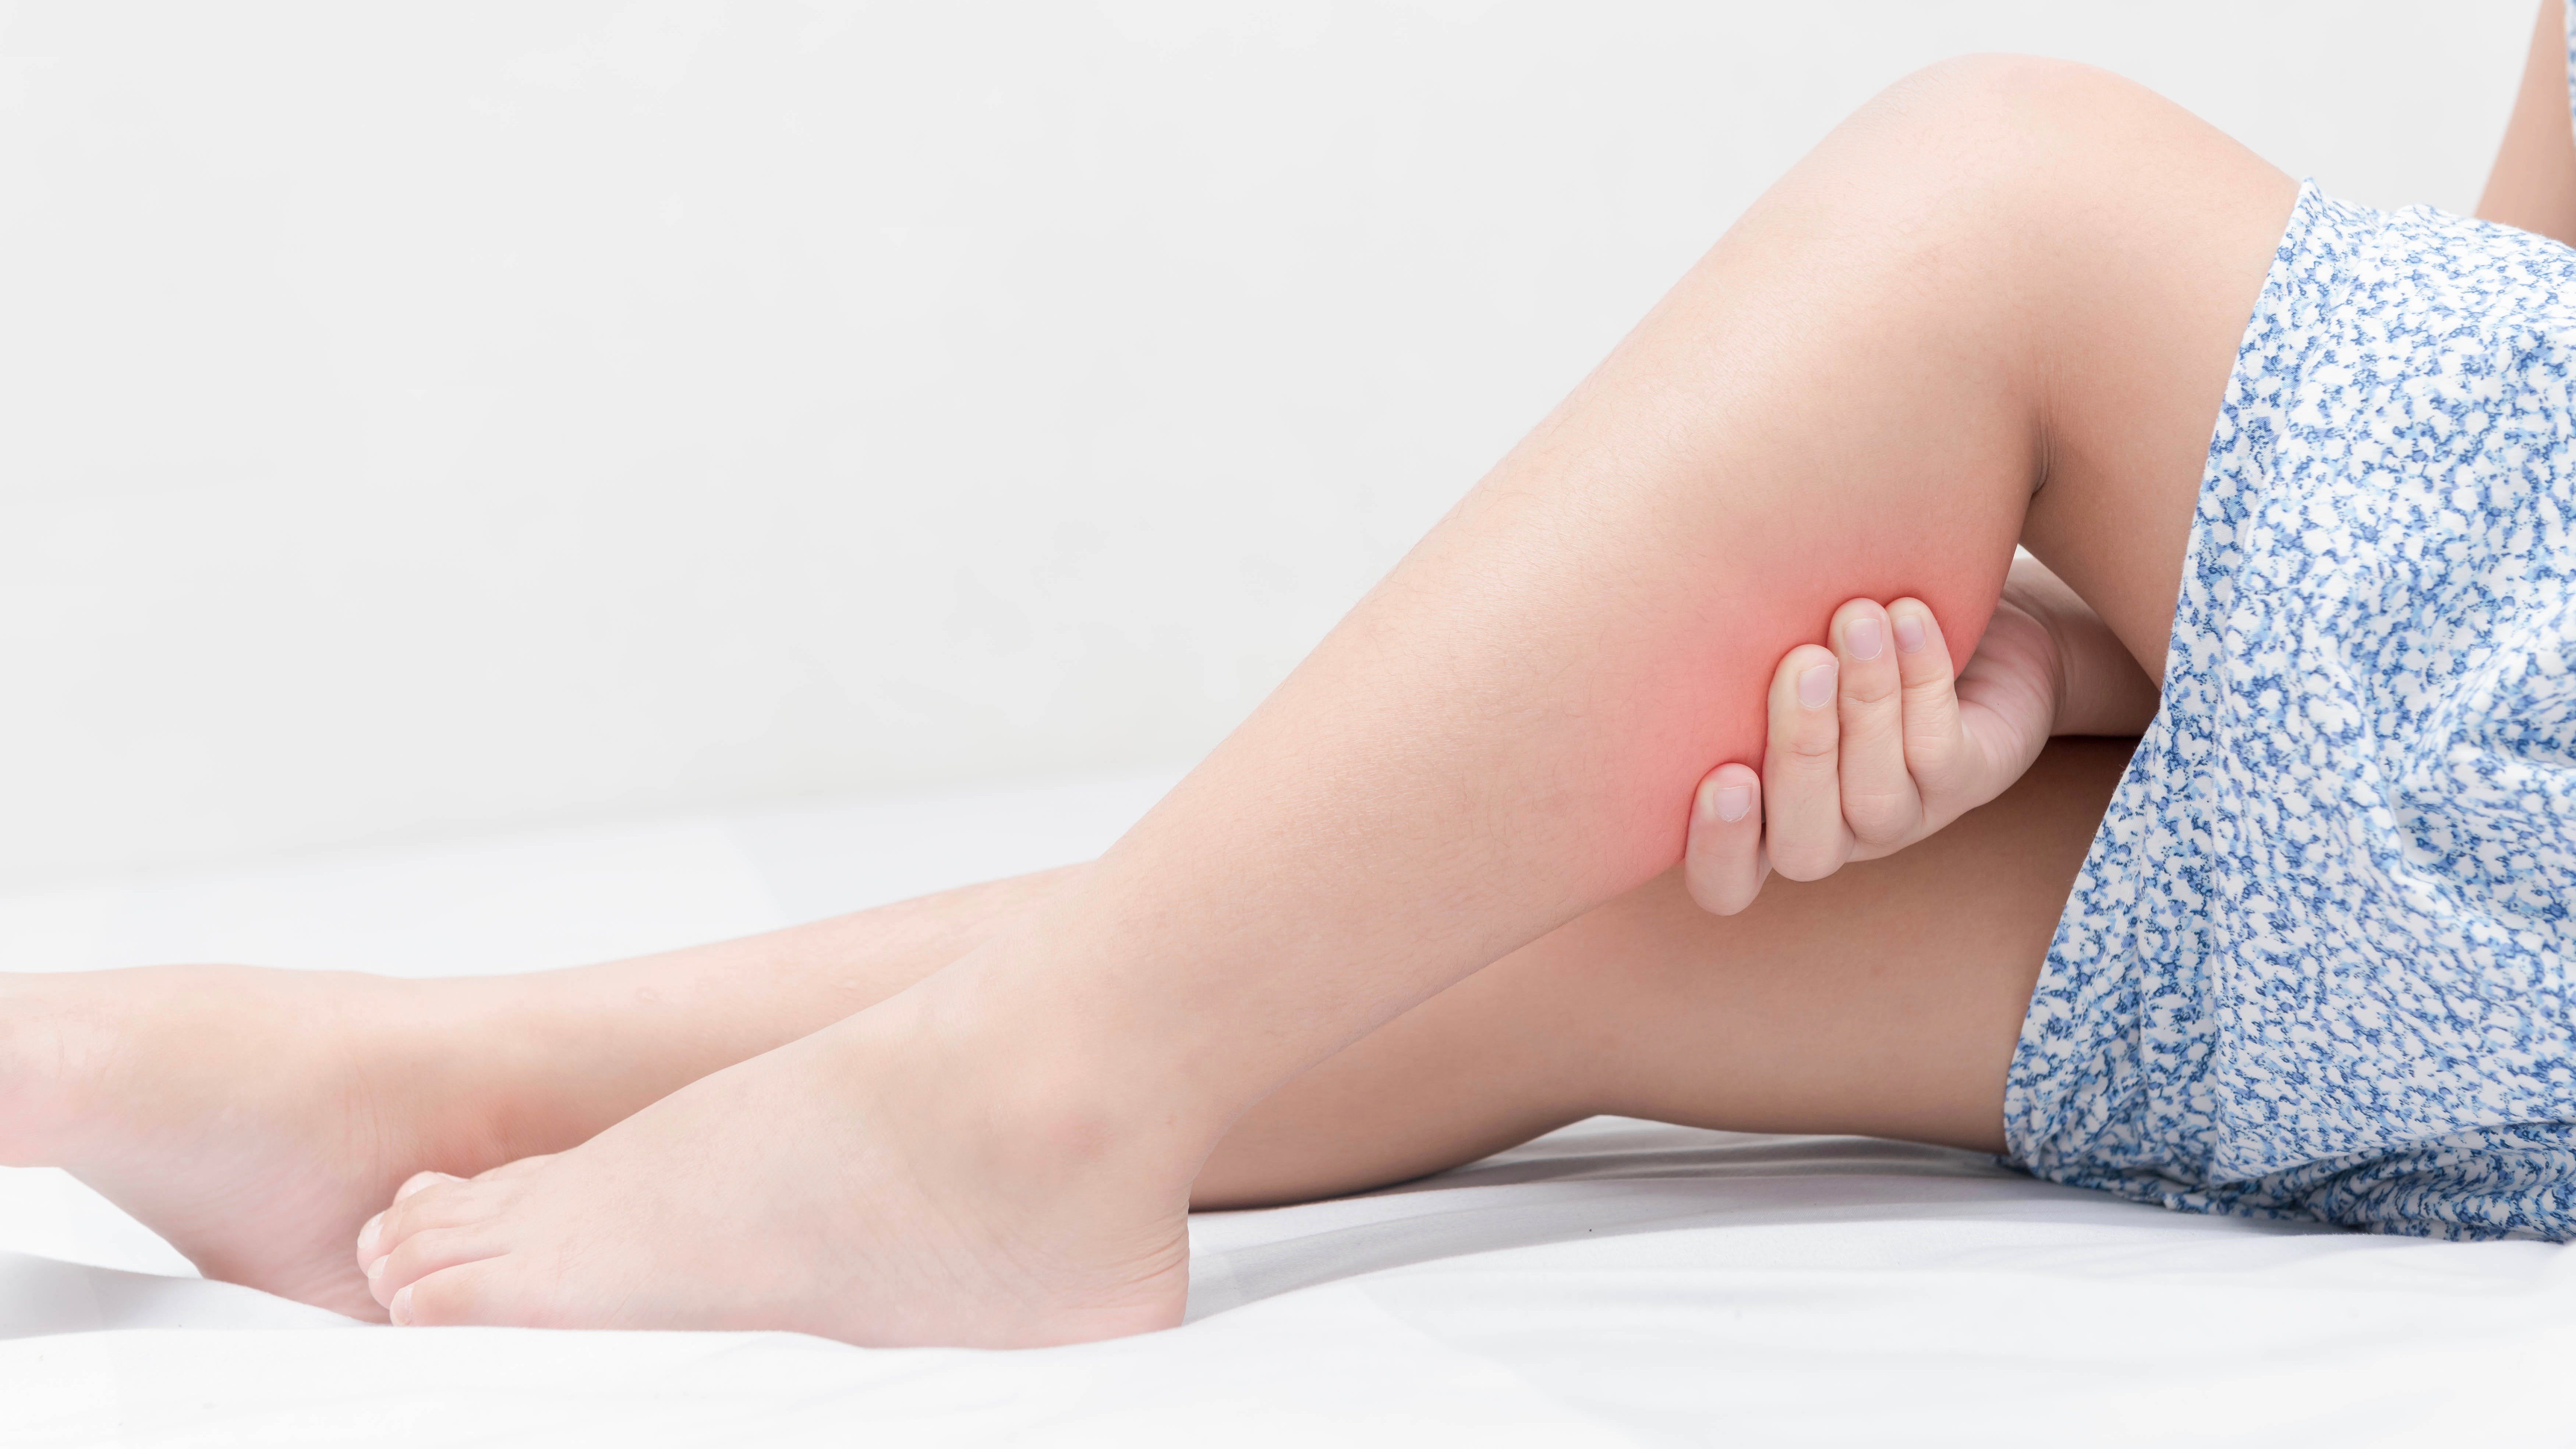 Leg pain in a girl on bed,